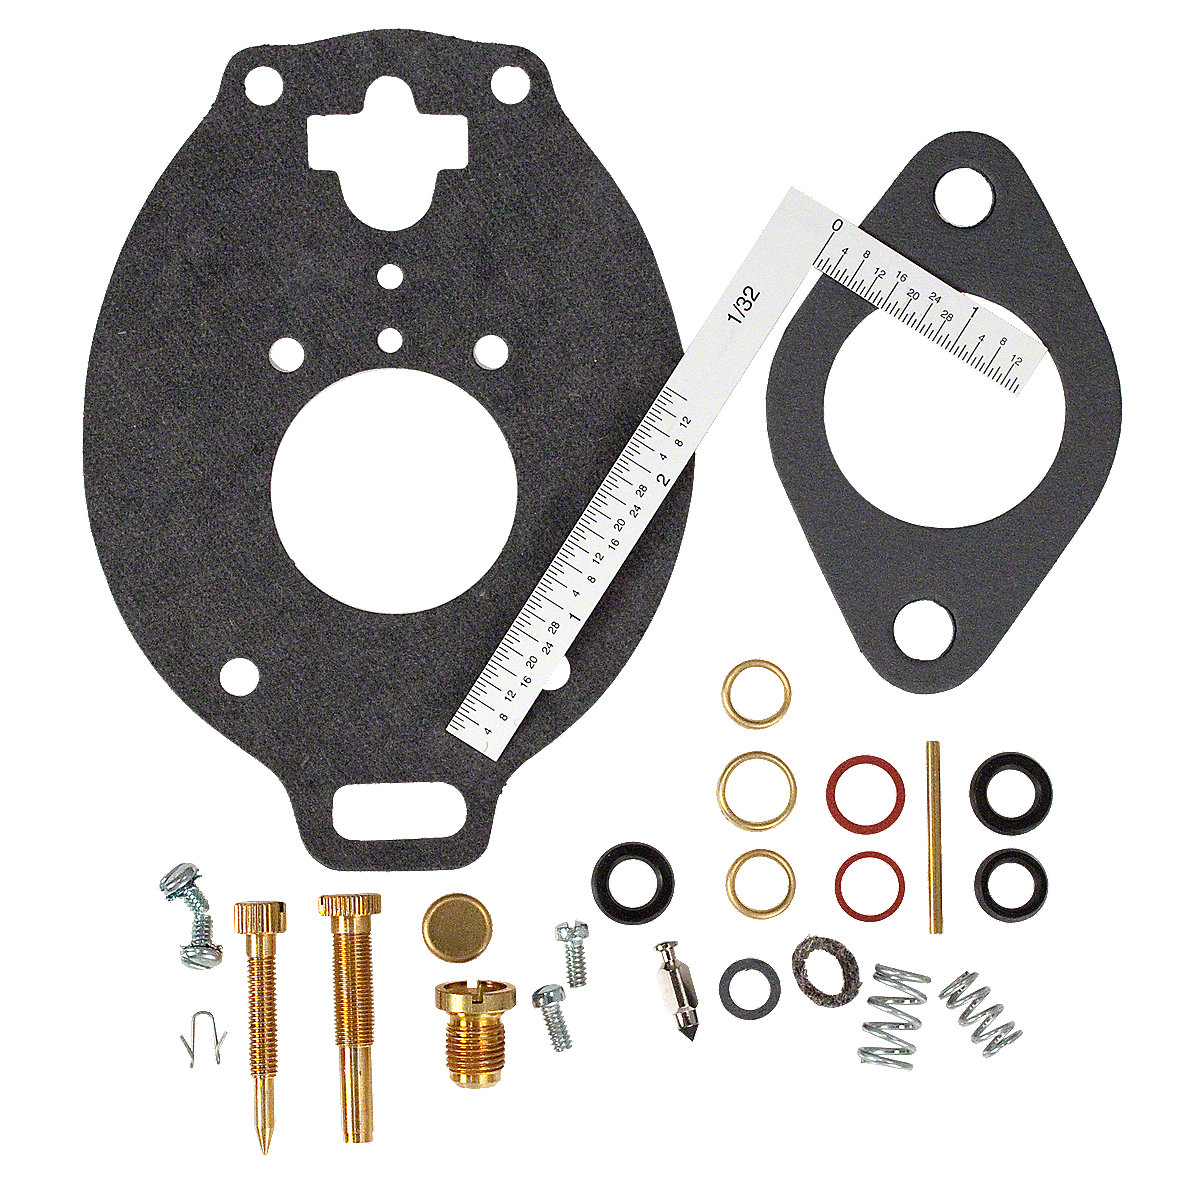 Marvel Schebler Carburetor kit For Massey Ferguson: 303, 85, 88, Super 90, Massey Harris: 102, 201, 202, 203.